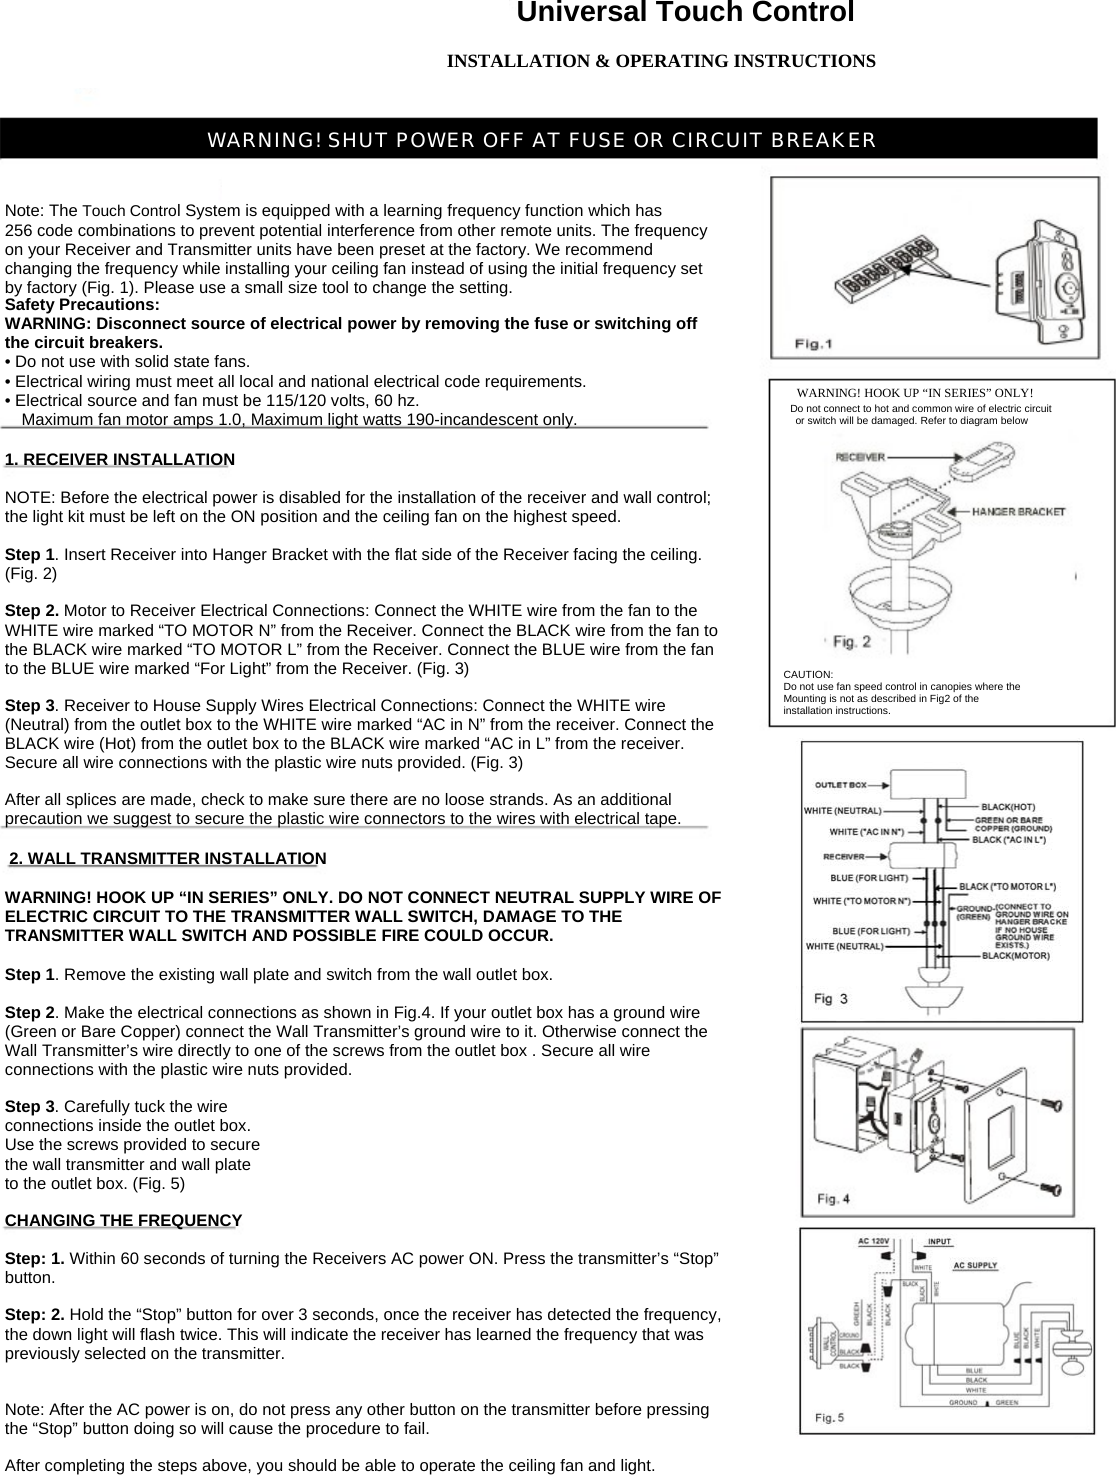 hunter fan wall control instructions 24794